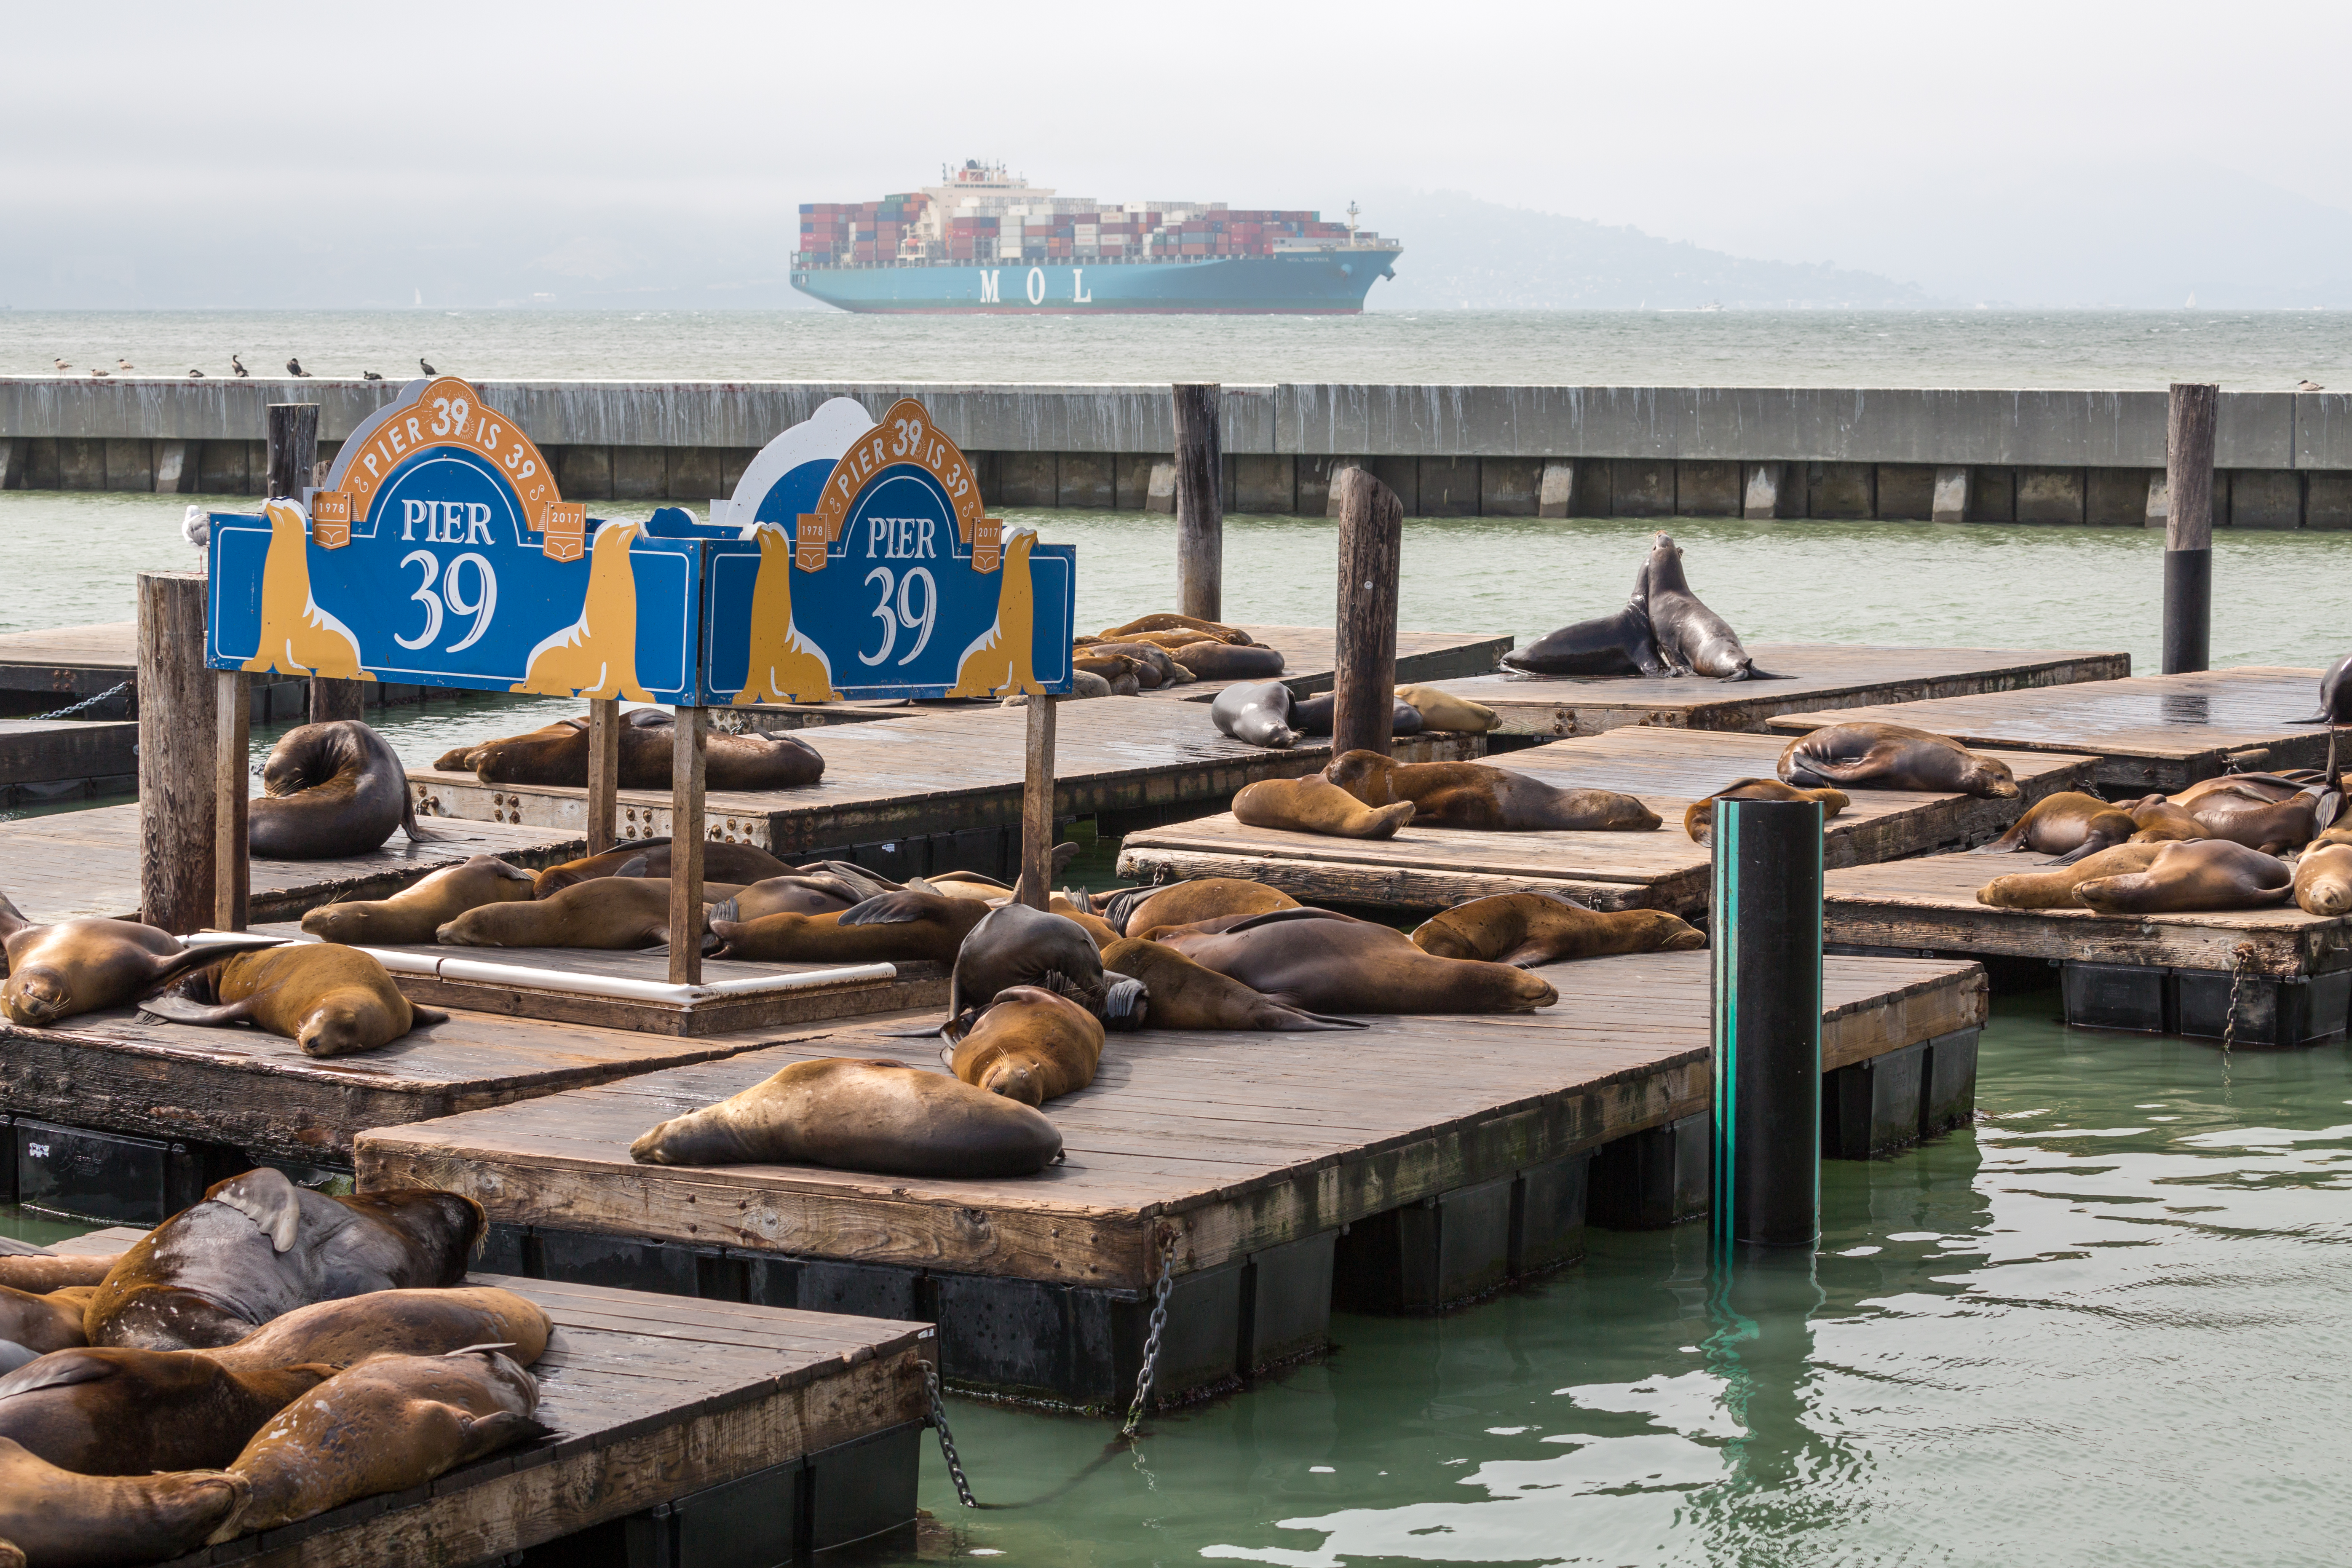 Sea Lions, California, USA